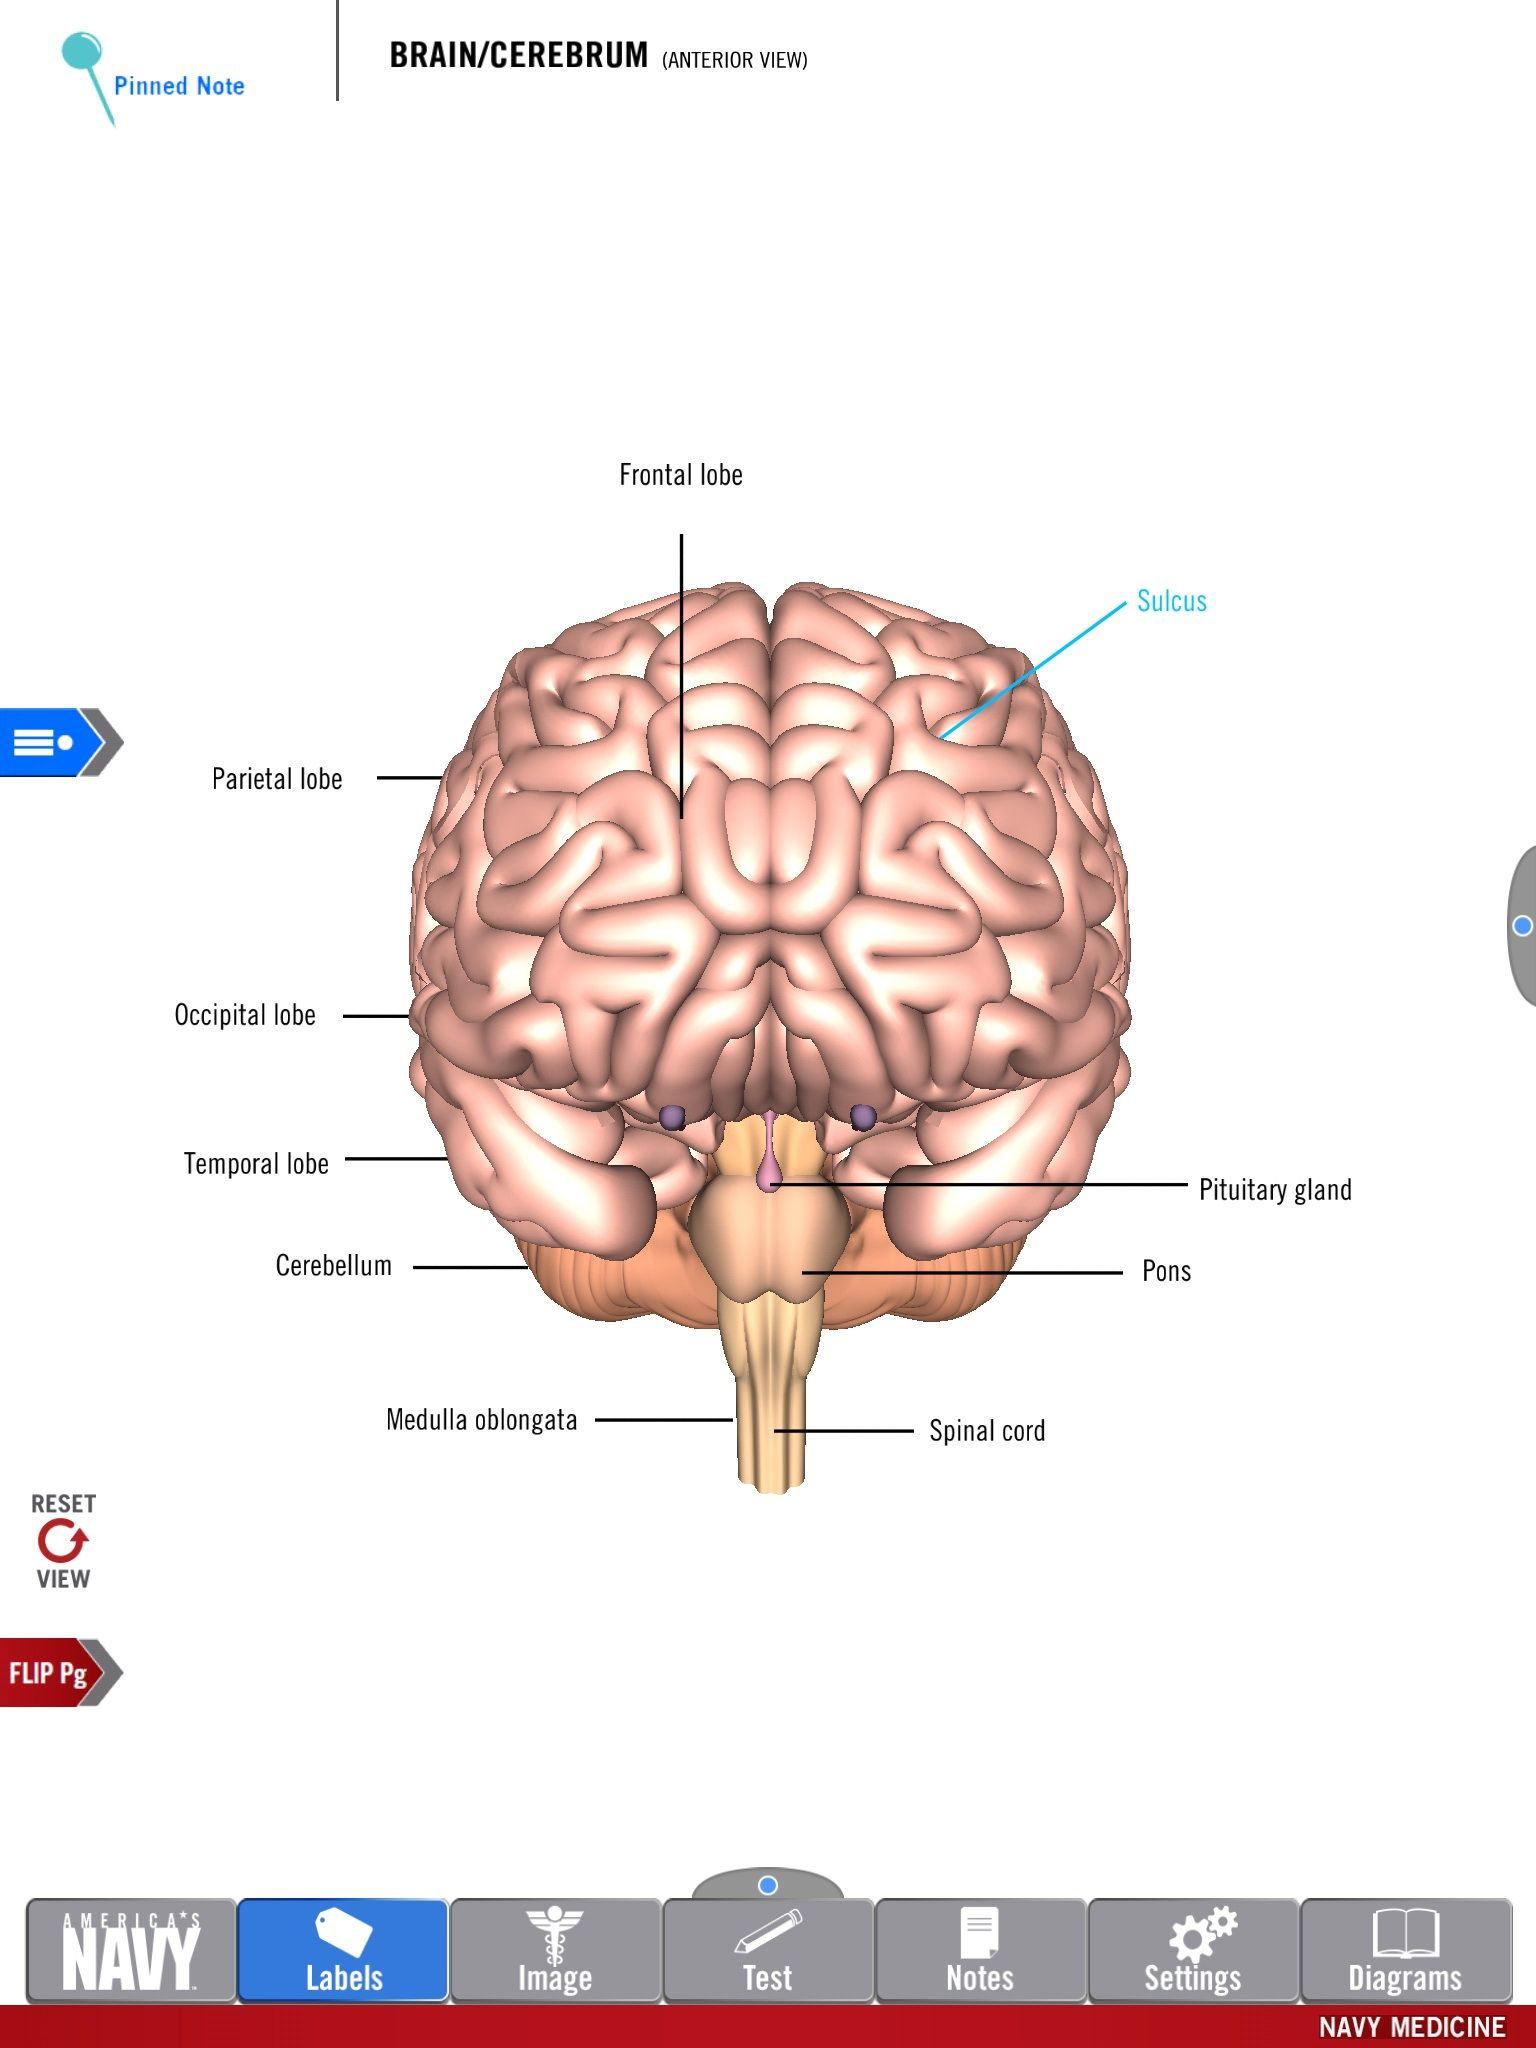 hight resolution of diagram of the brain cerebrum from the free anatomy study guide app by america s navy includes high res 3 d diagrams navy usnavy americasnavy navy